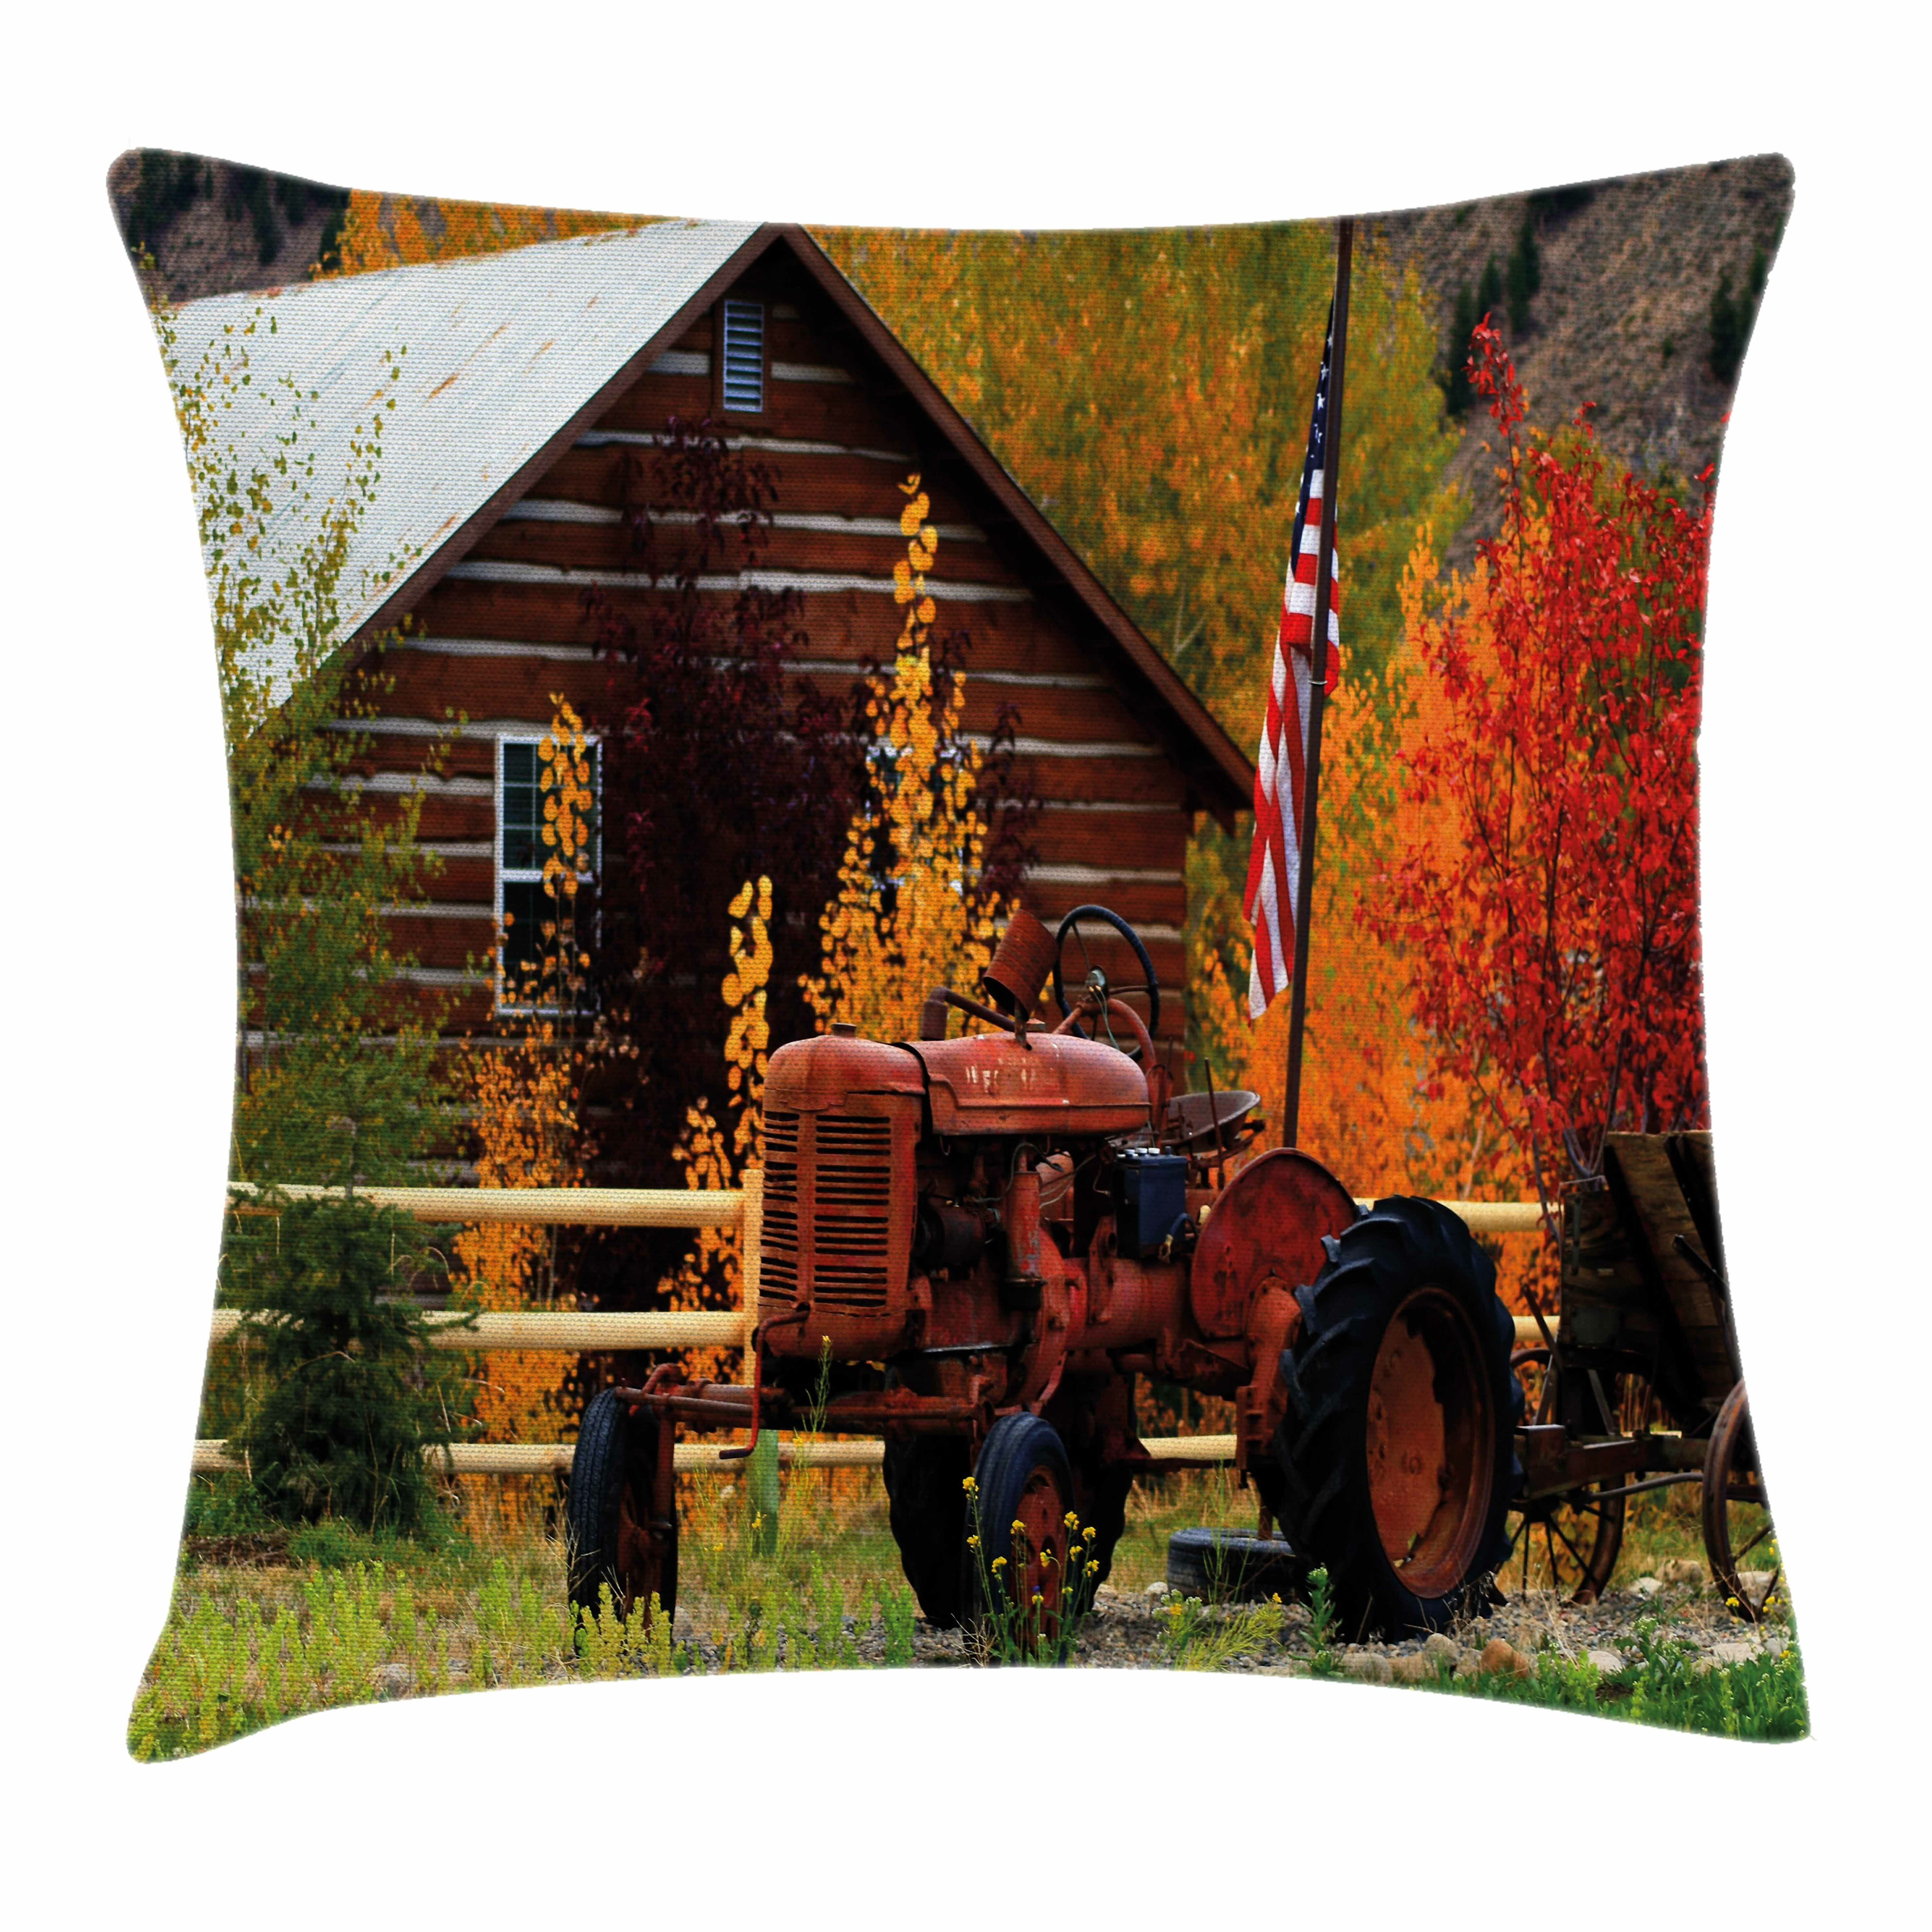 The Holiday Aisle Fall Decor Rustic Cabin Tractor Square Pillow Cover Wayfair